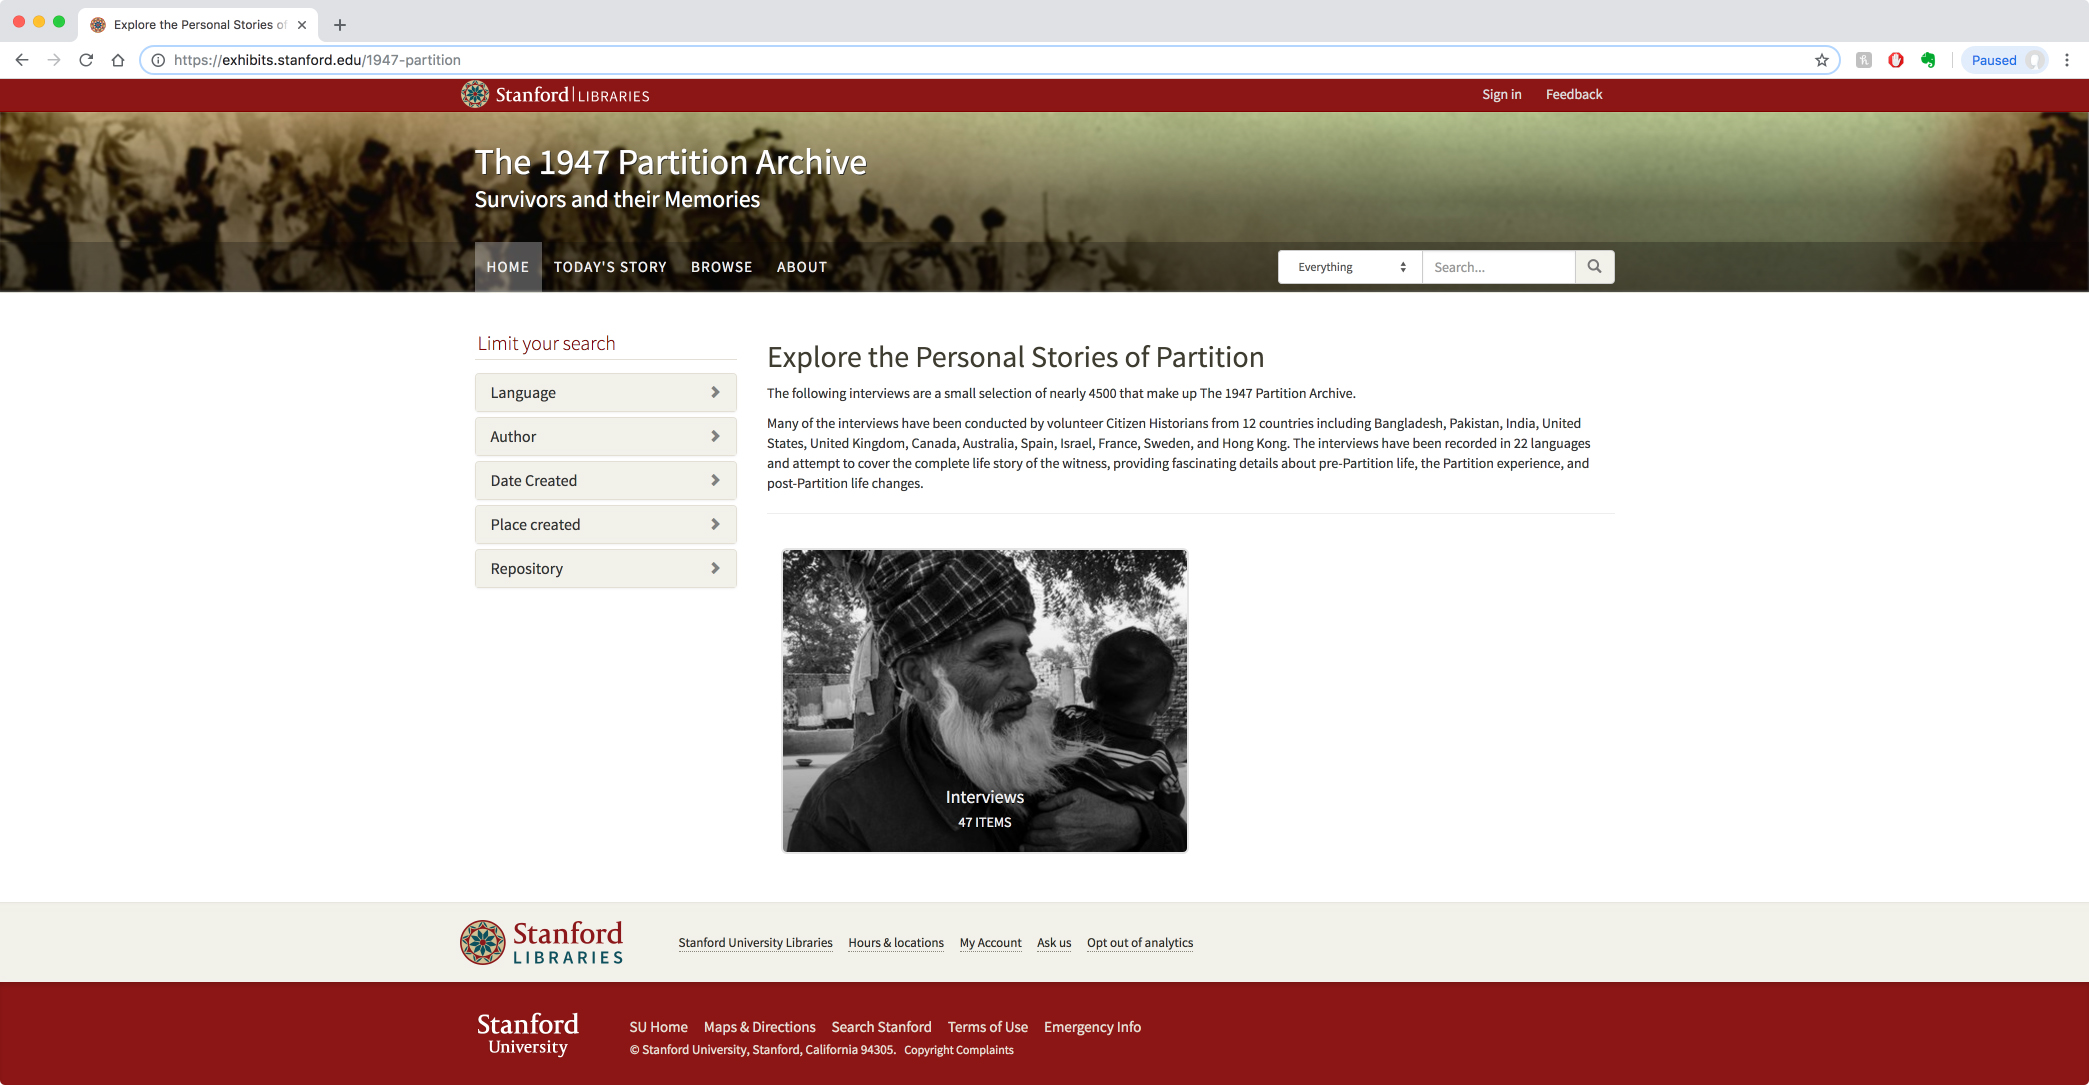 Stanford University's 1947 Partition website.